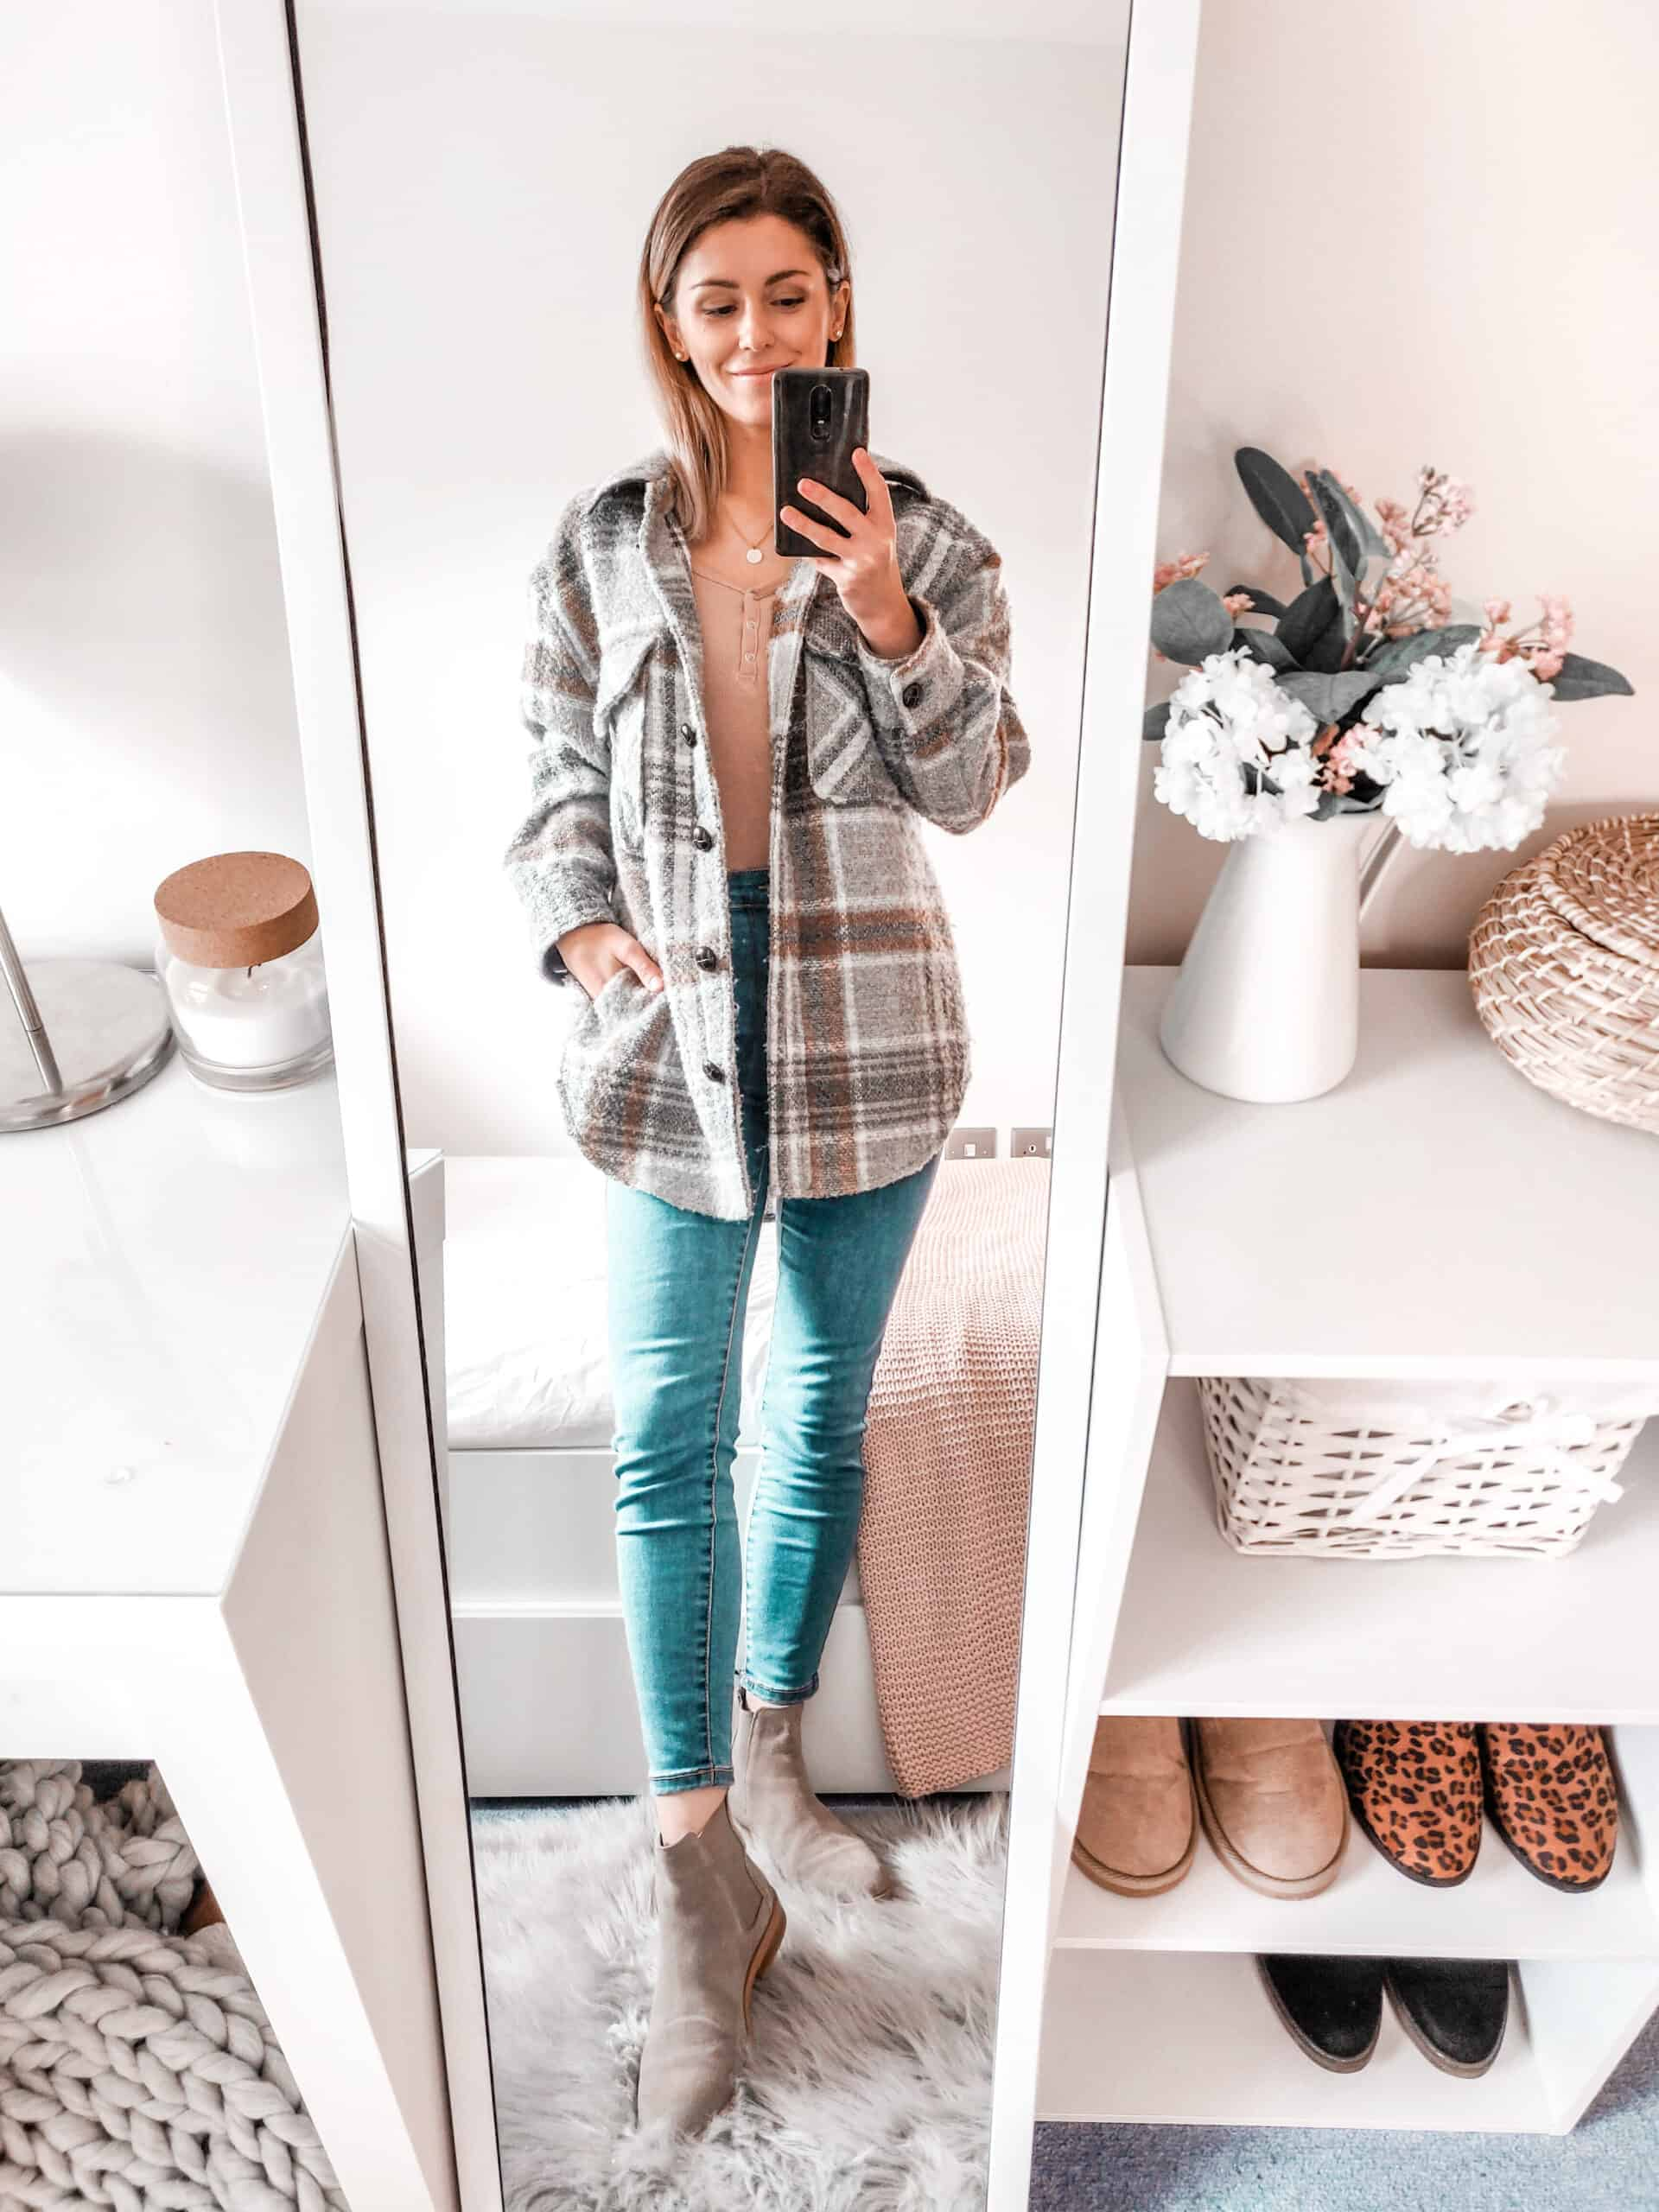 Primark check jacket outfit for autumn winter fashion